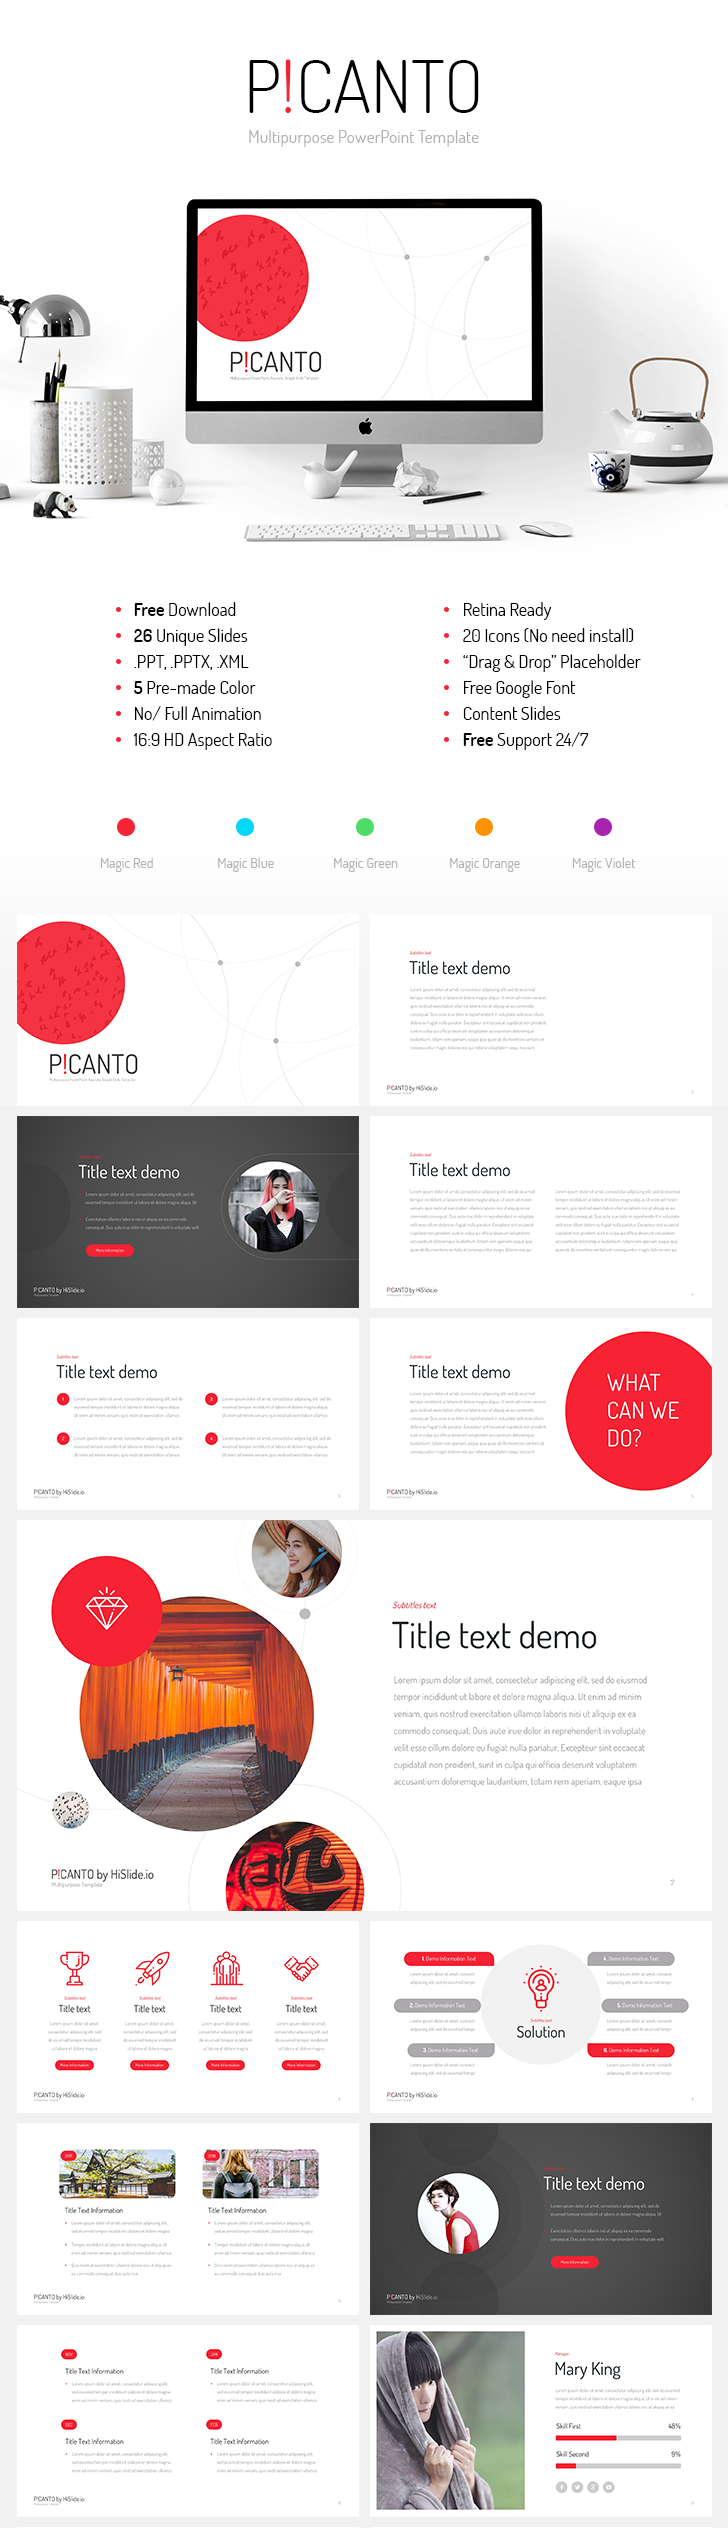 Picanto-ppt-template-free-download